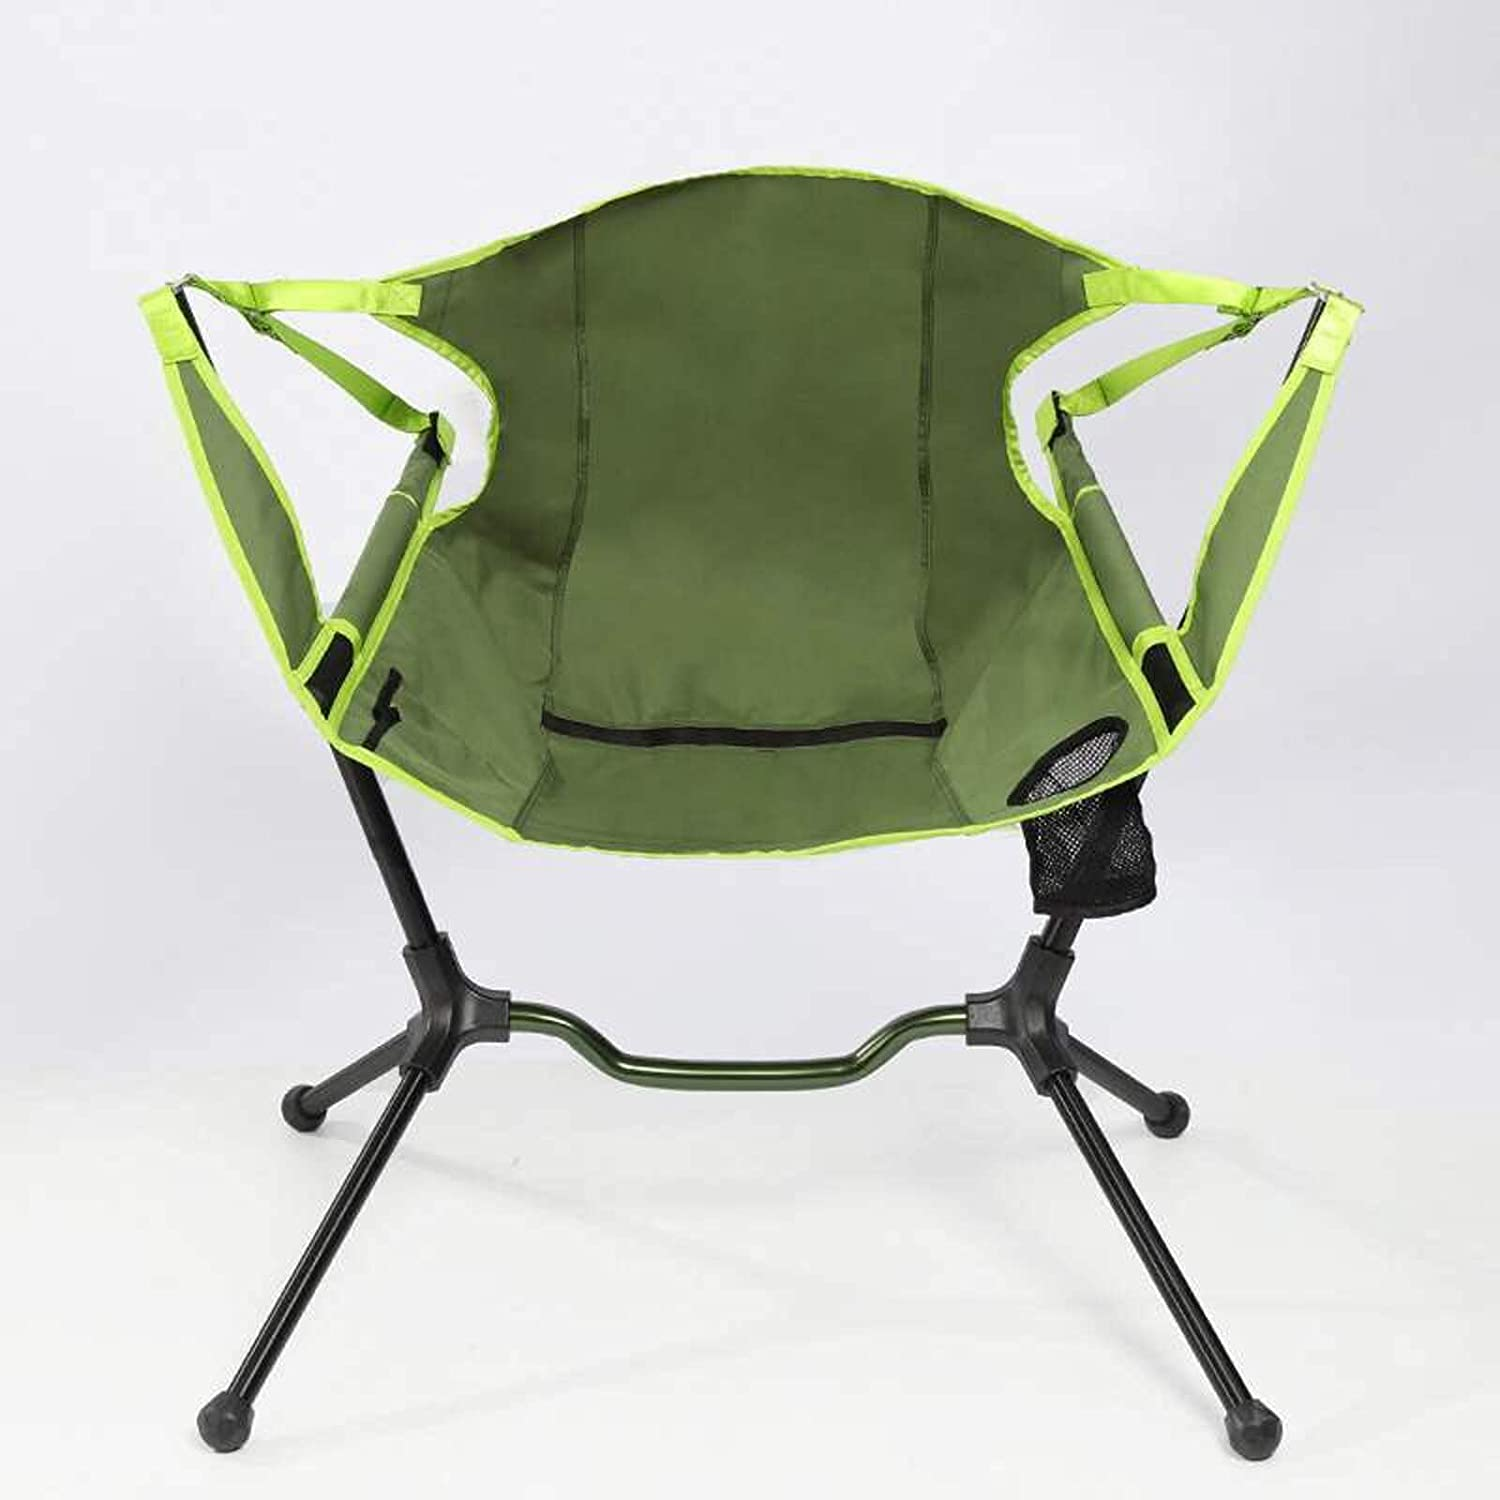 Popularity FYLHX Camping Chair Memphis Mall Comfortable Swi Relaxation Luxury Lawn